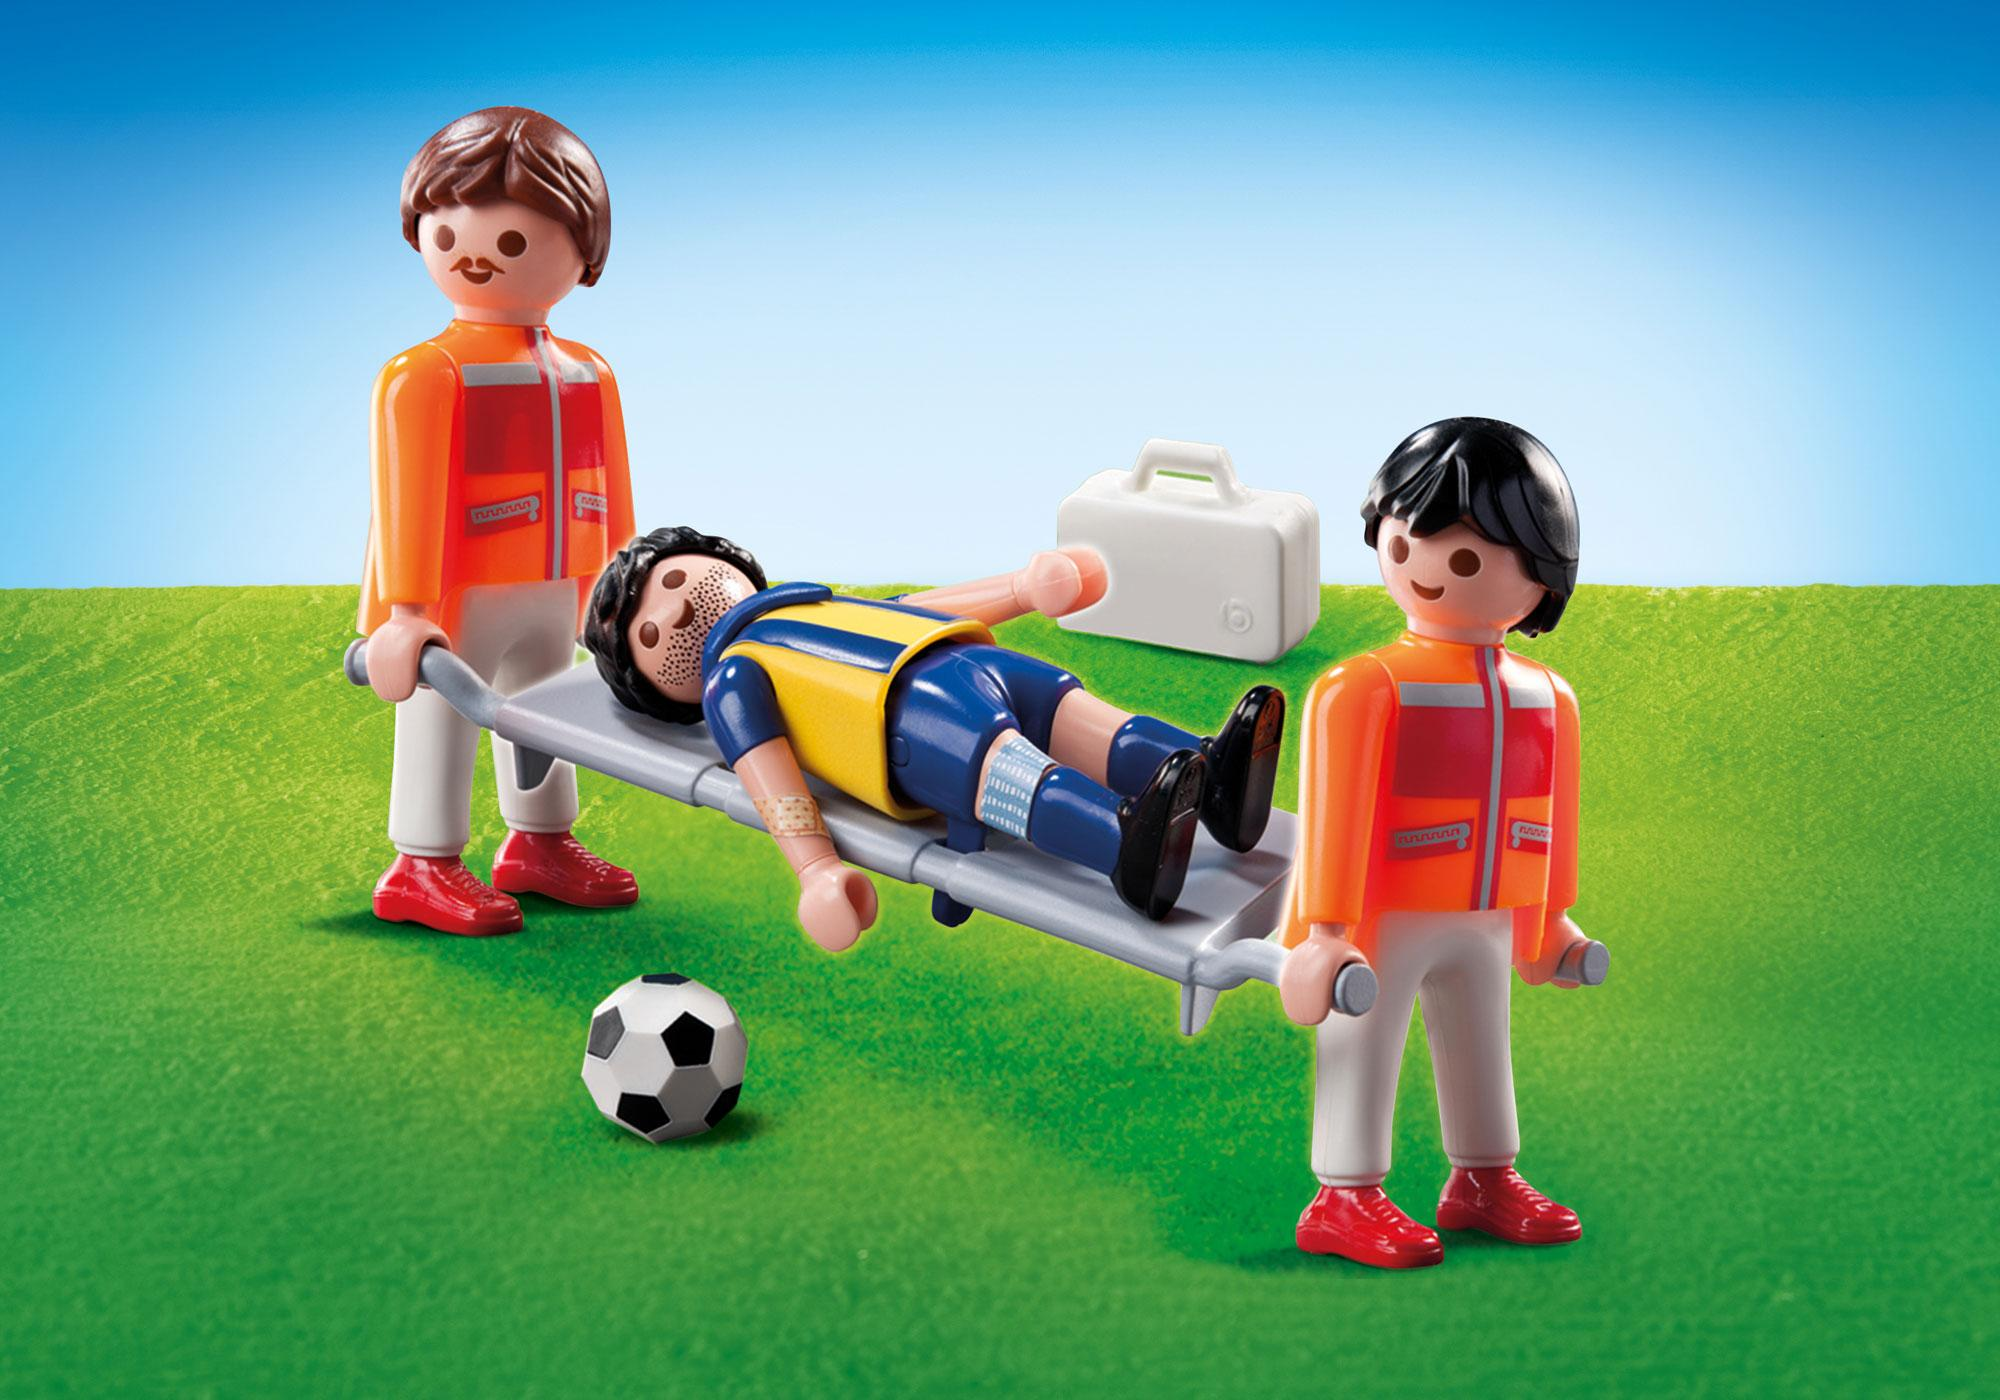 http://media.playmobil.com/i/playmobil/9826_product_detail/Paramedics with Soccer Player